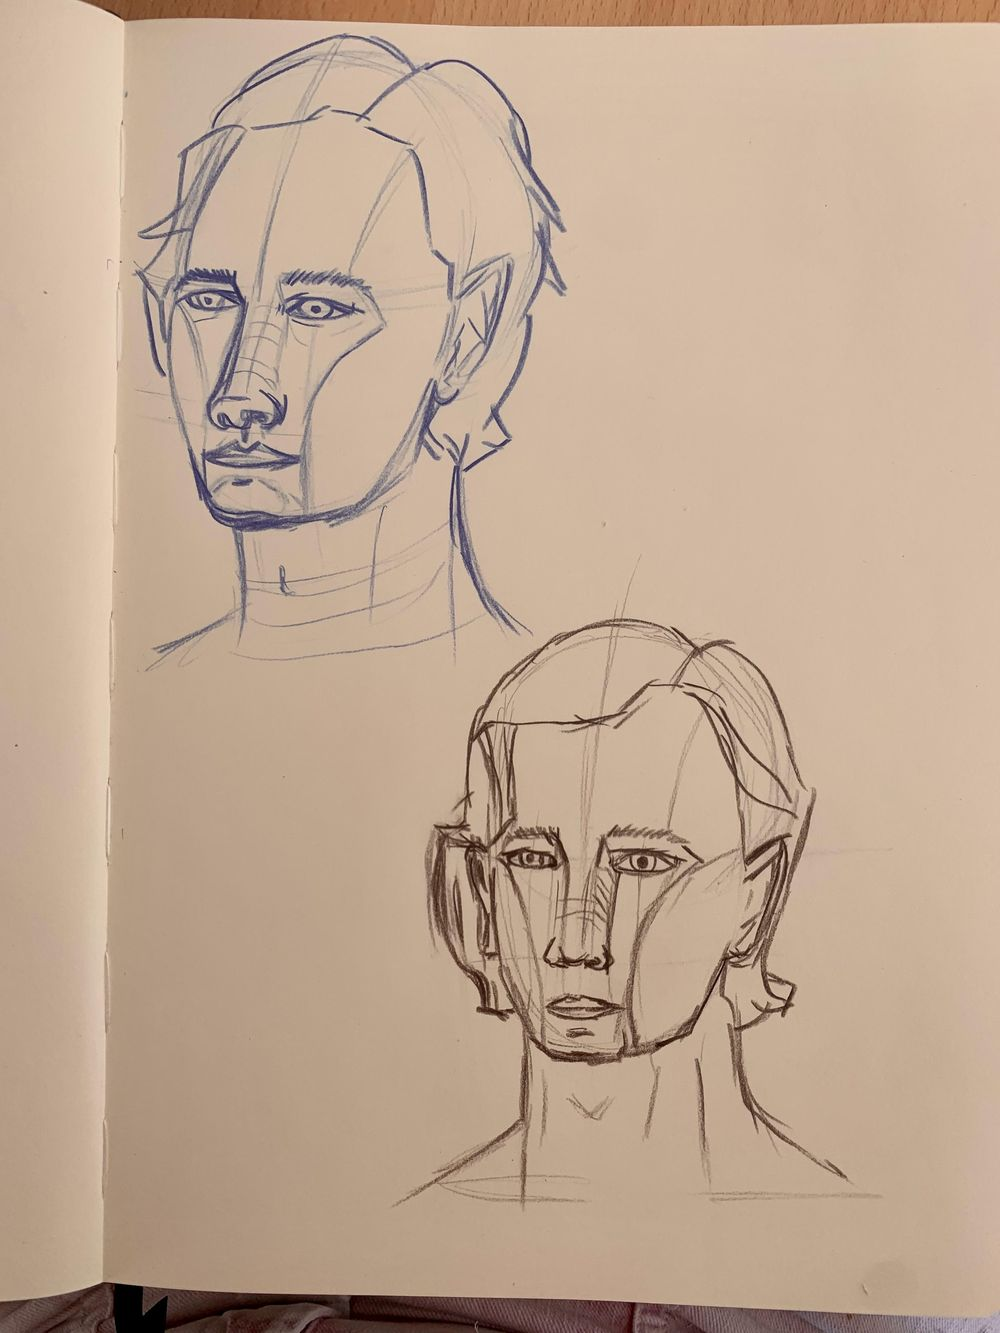 Head Drawing 1 - image 2 - student project